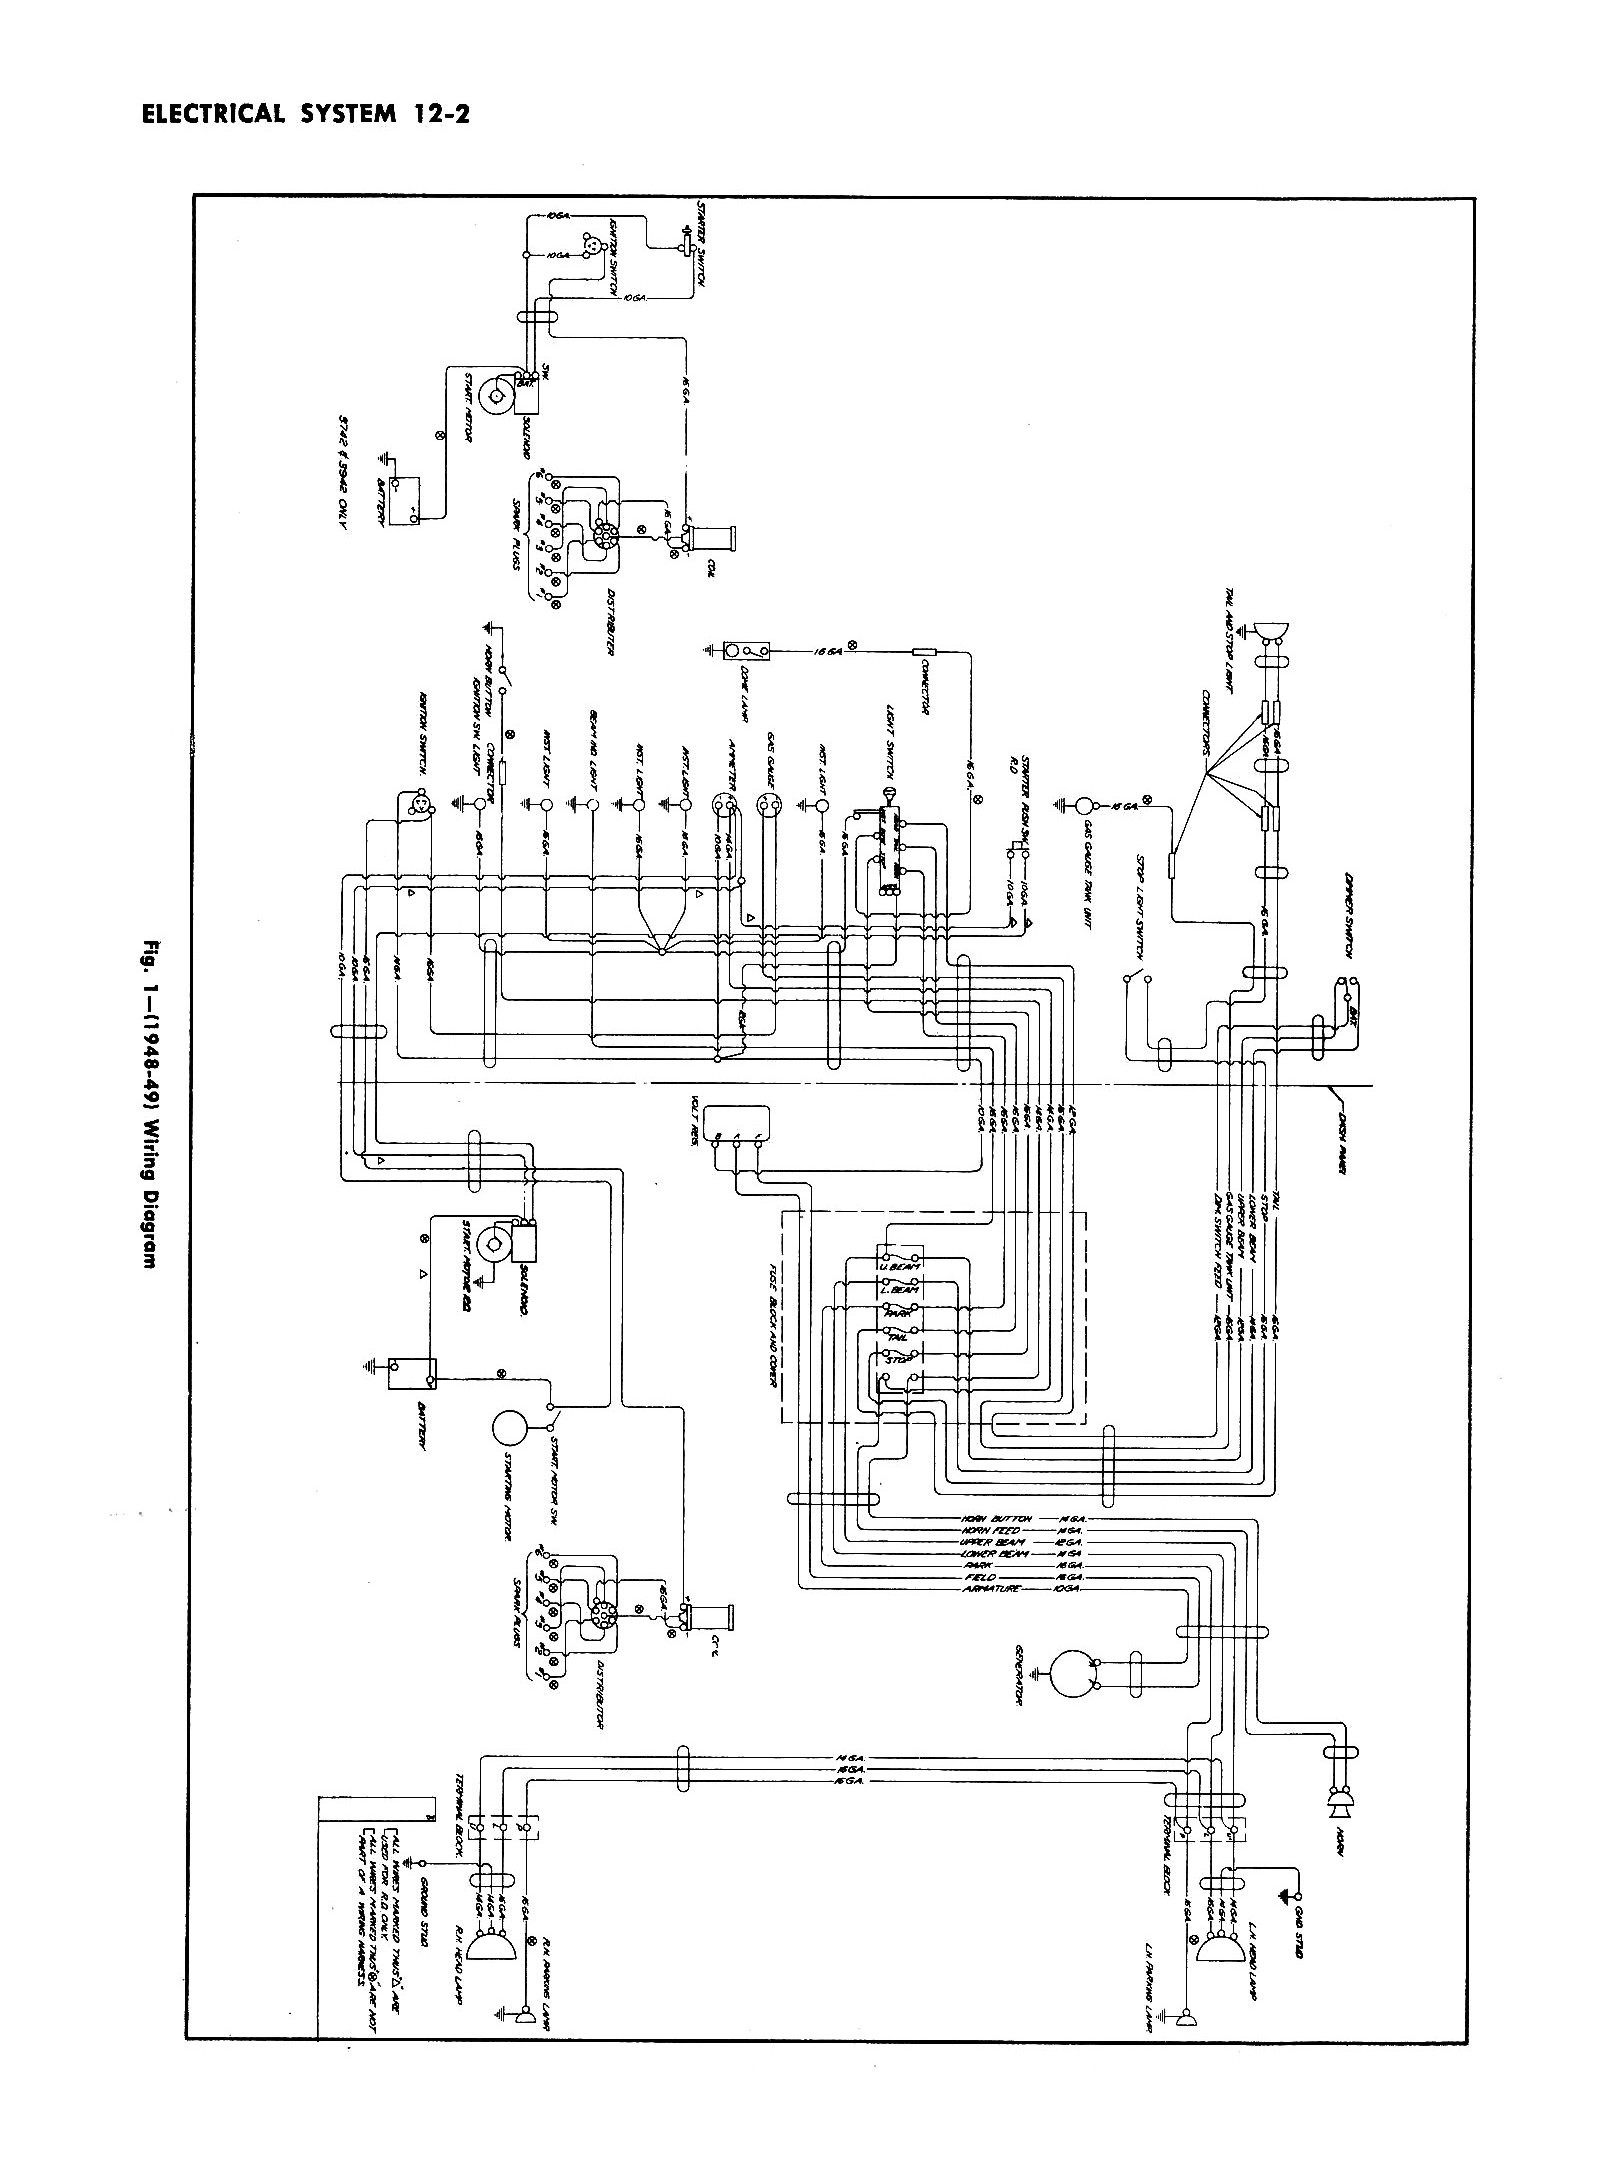 12 volt wiring diagram for 1956 chevy